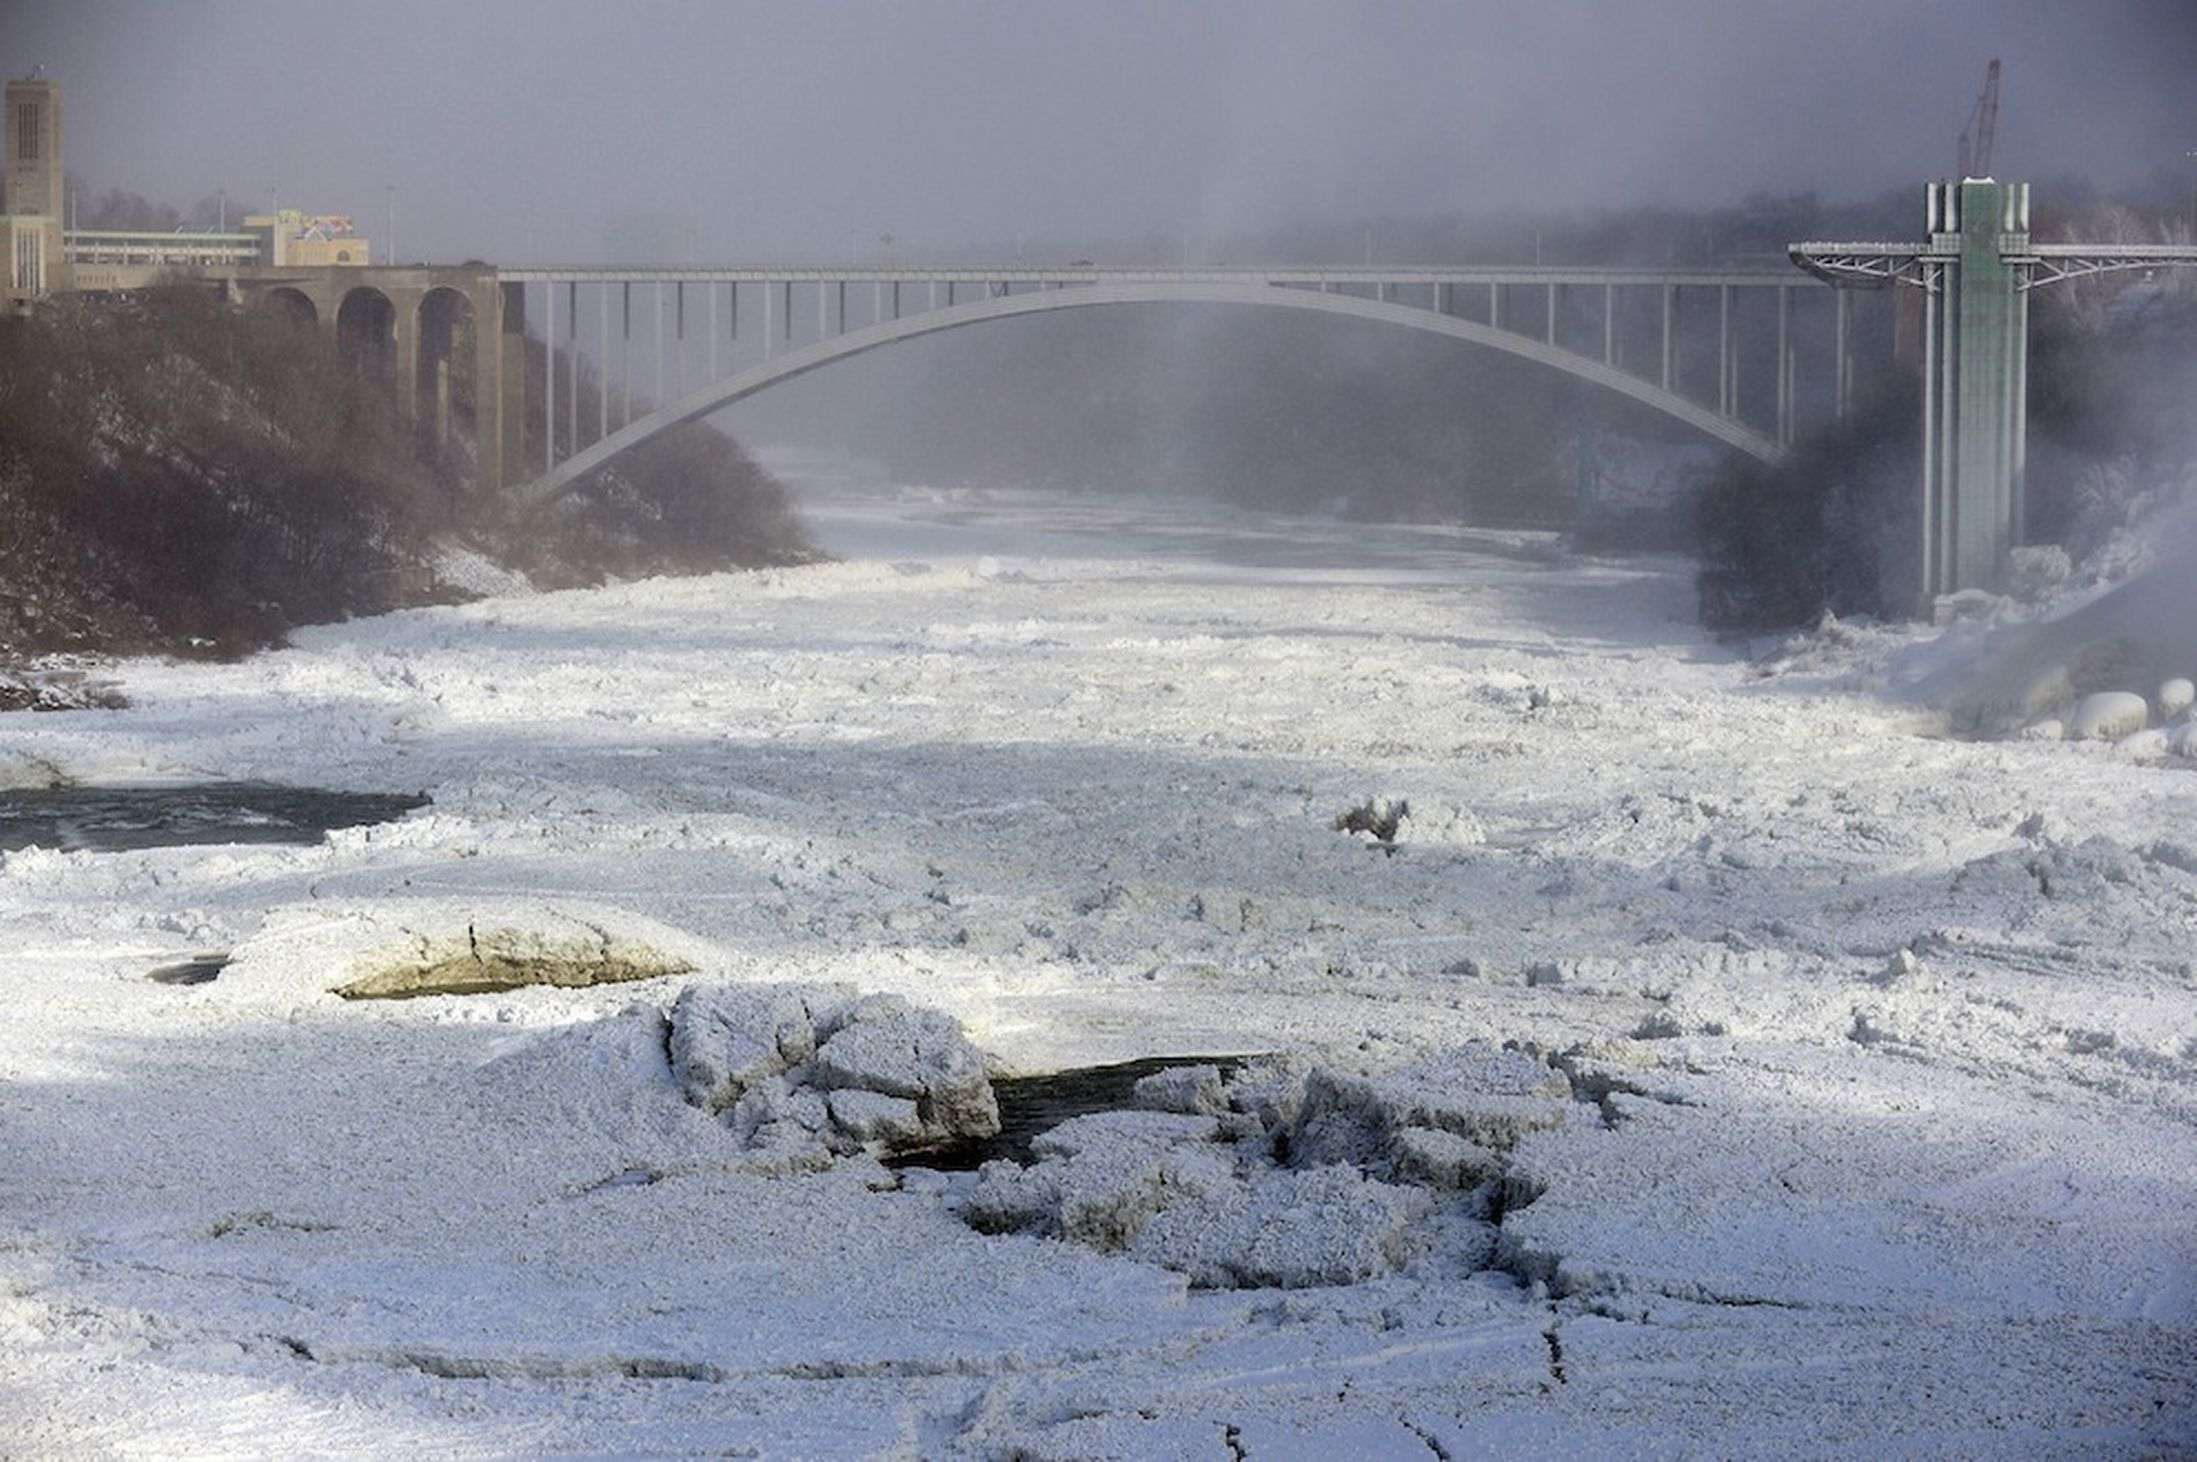 Niagara-Falls-freezes-as-polar-vortex-grips-North-America-3003773_R